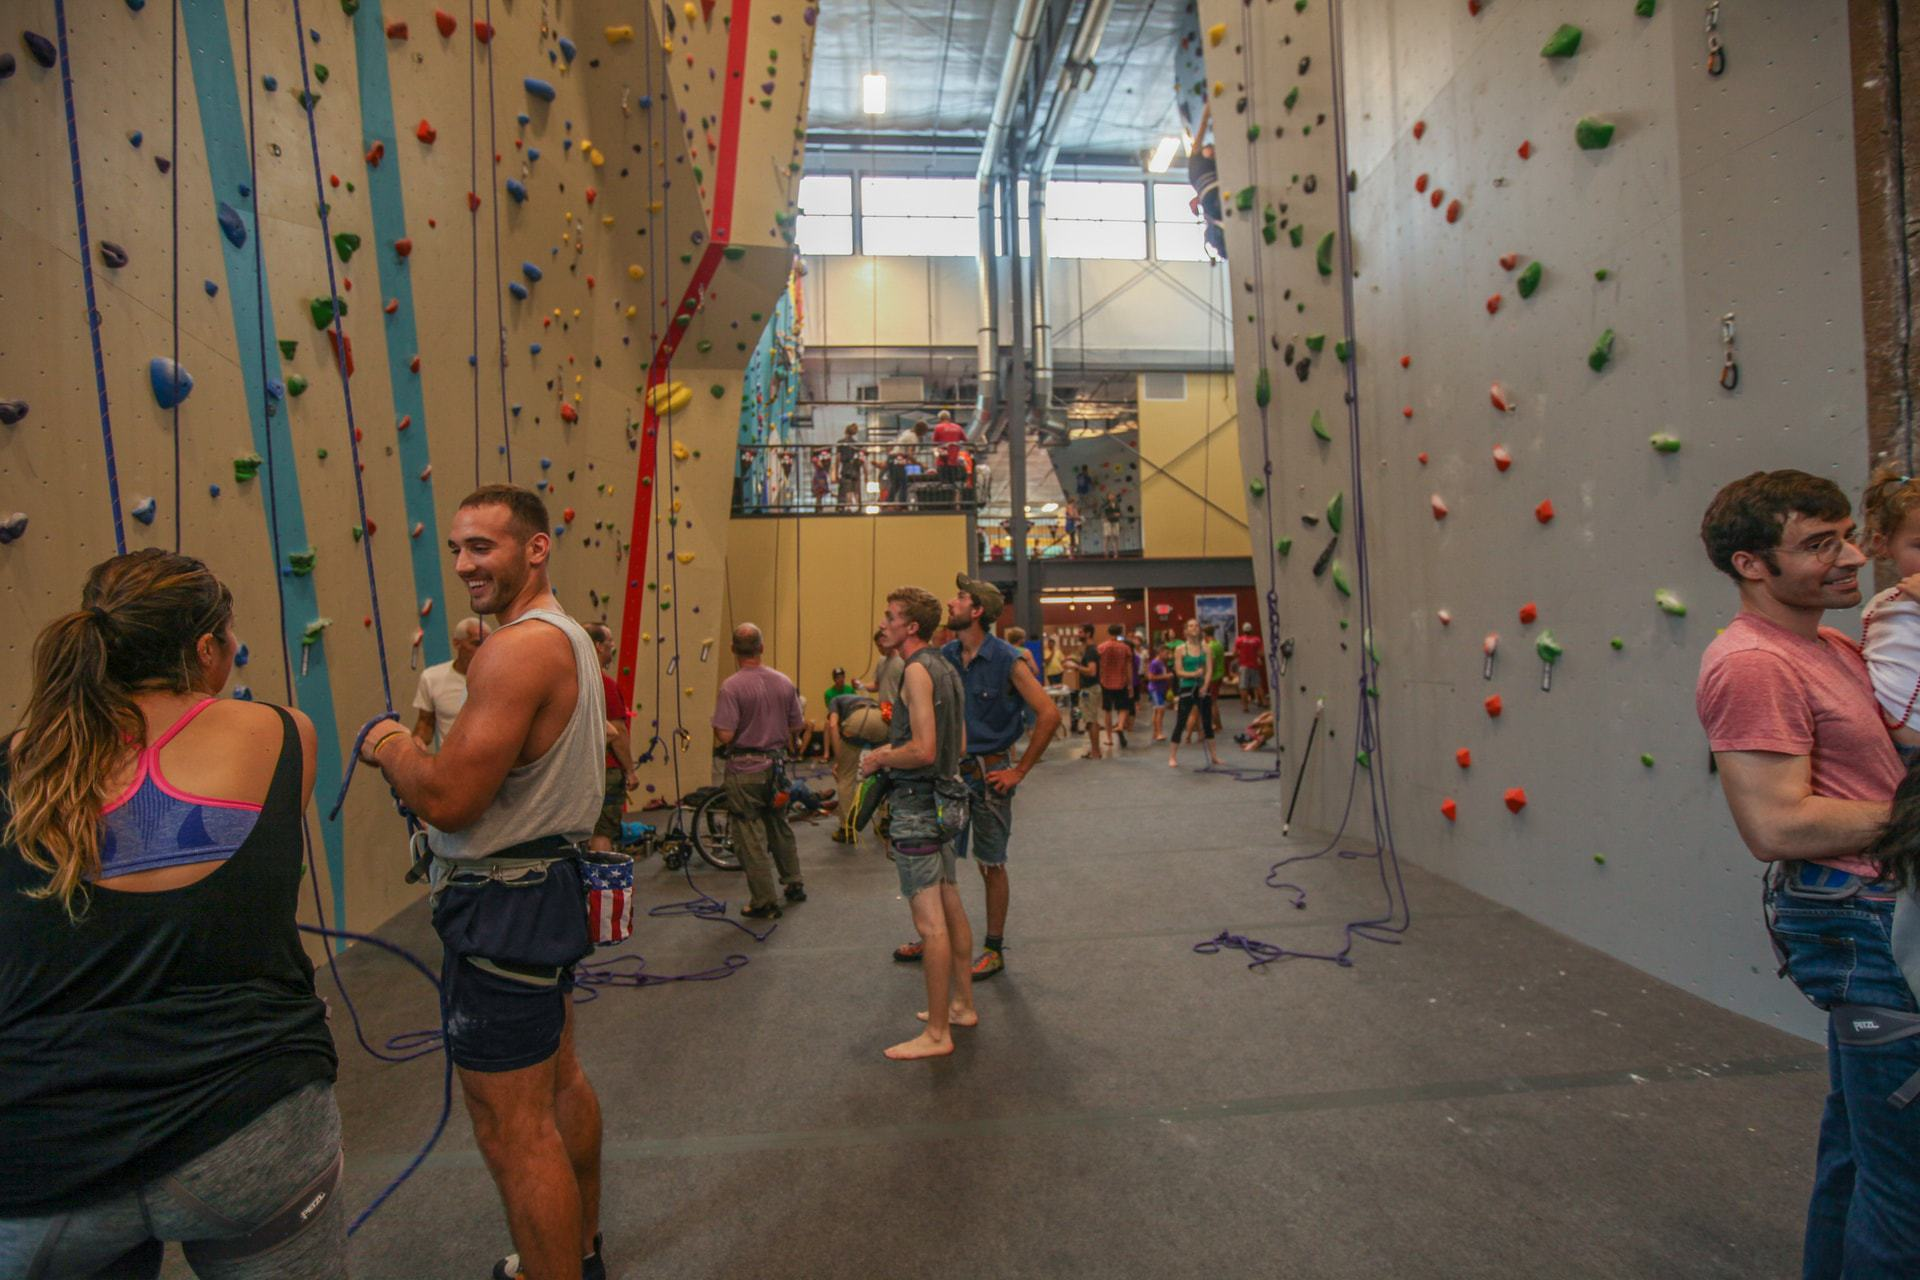 Whether youre an advanced climber or just getting started, youll find your wall at the Calgary.